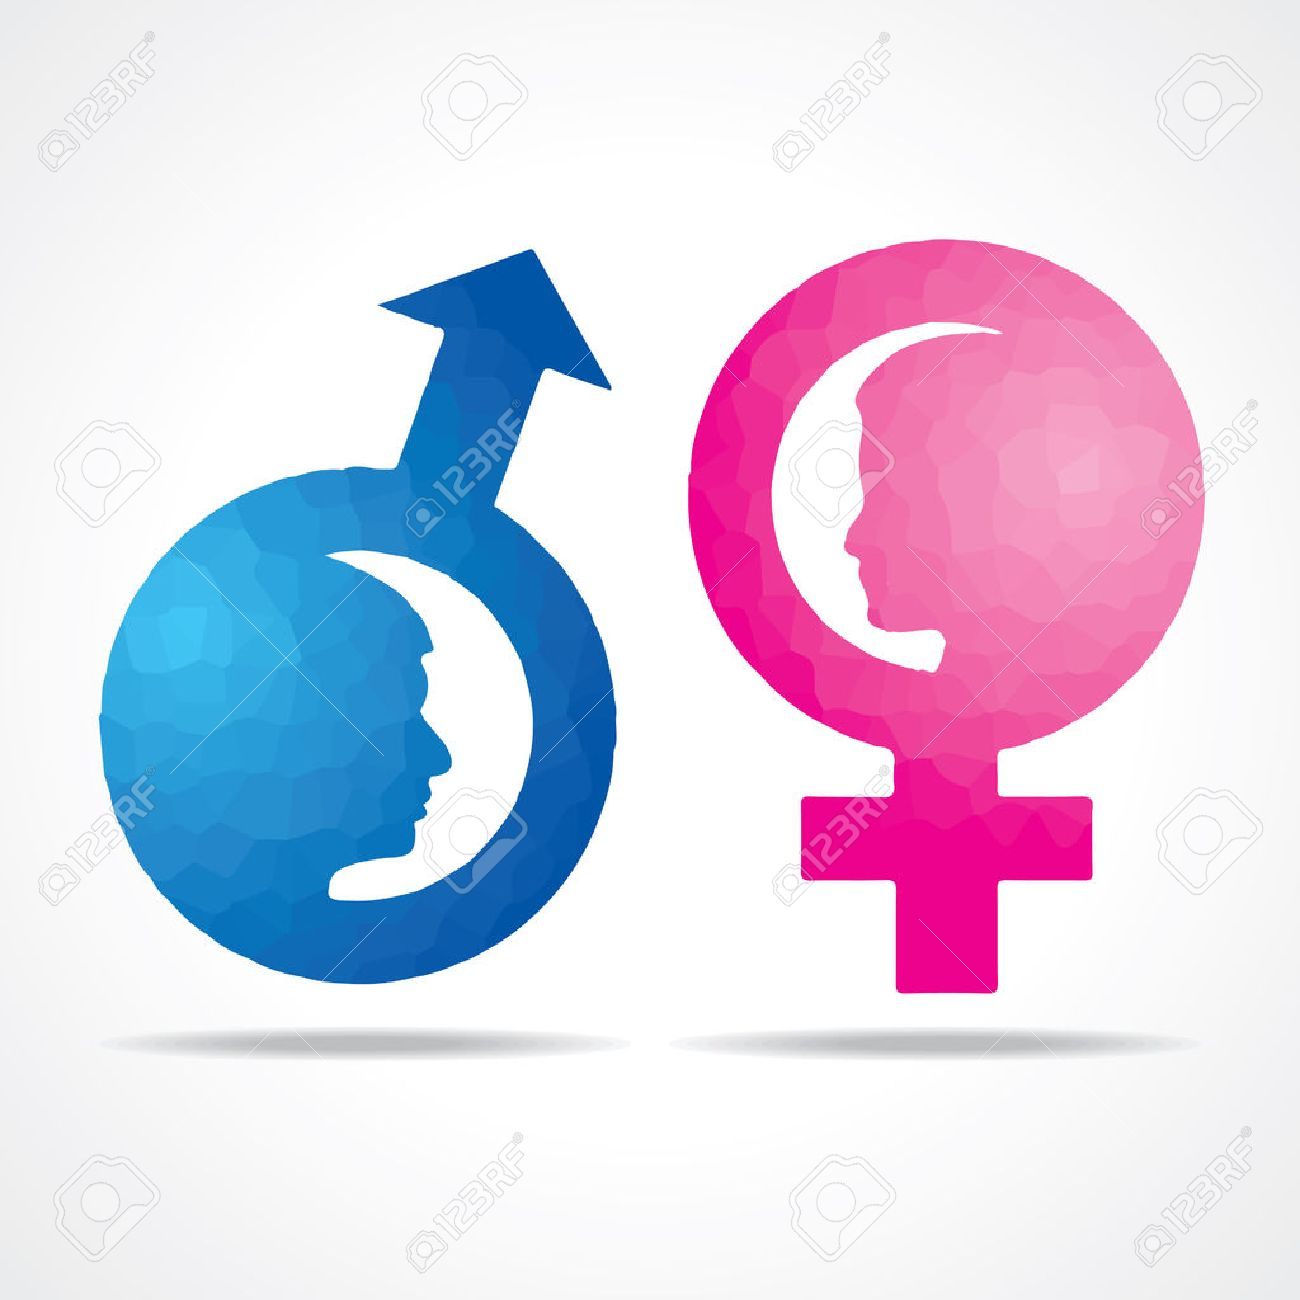 Illustration Of Male Female Symbol With Female Face Royalty Free